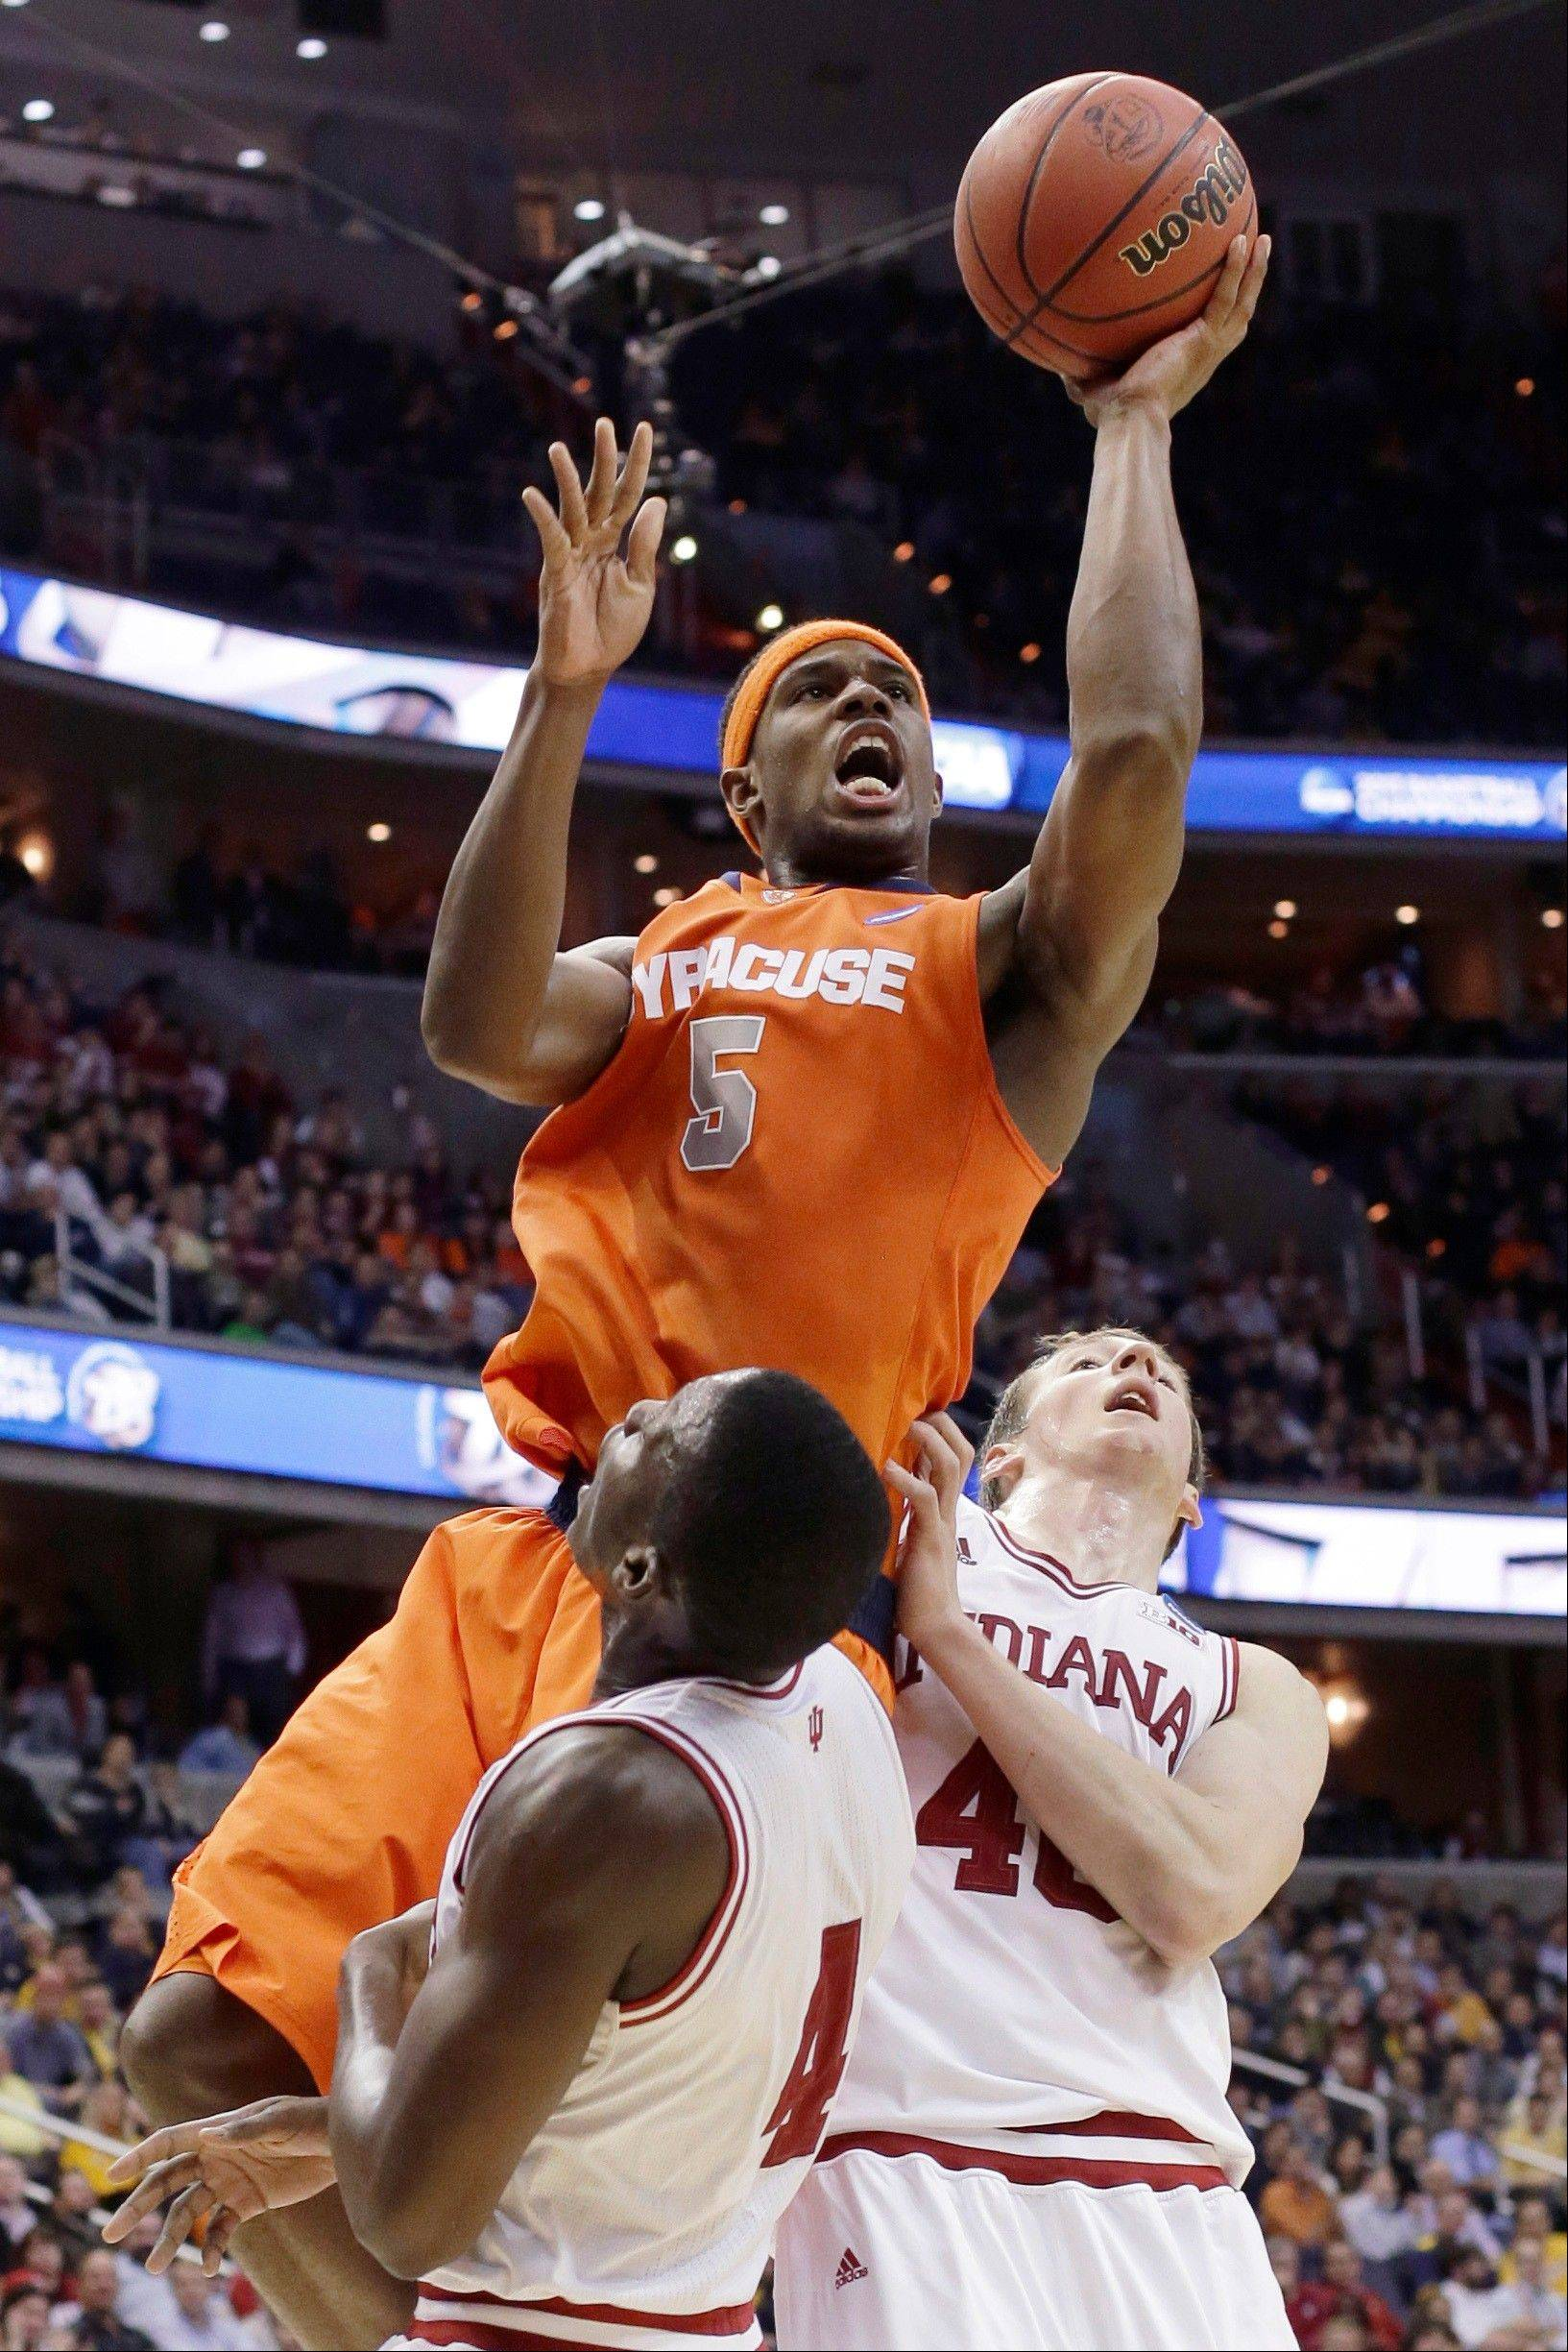 Syracuse forward C.J. Fair (5) shoots over Indiana guard Victor Oladipo (4) and forward Cody Zeller (40) during the second half of an East Regional semifinal in the NCAA men's college basketball tournament, Thursday, March 28, 2013, in Washington.